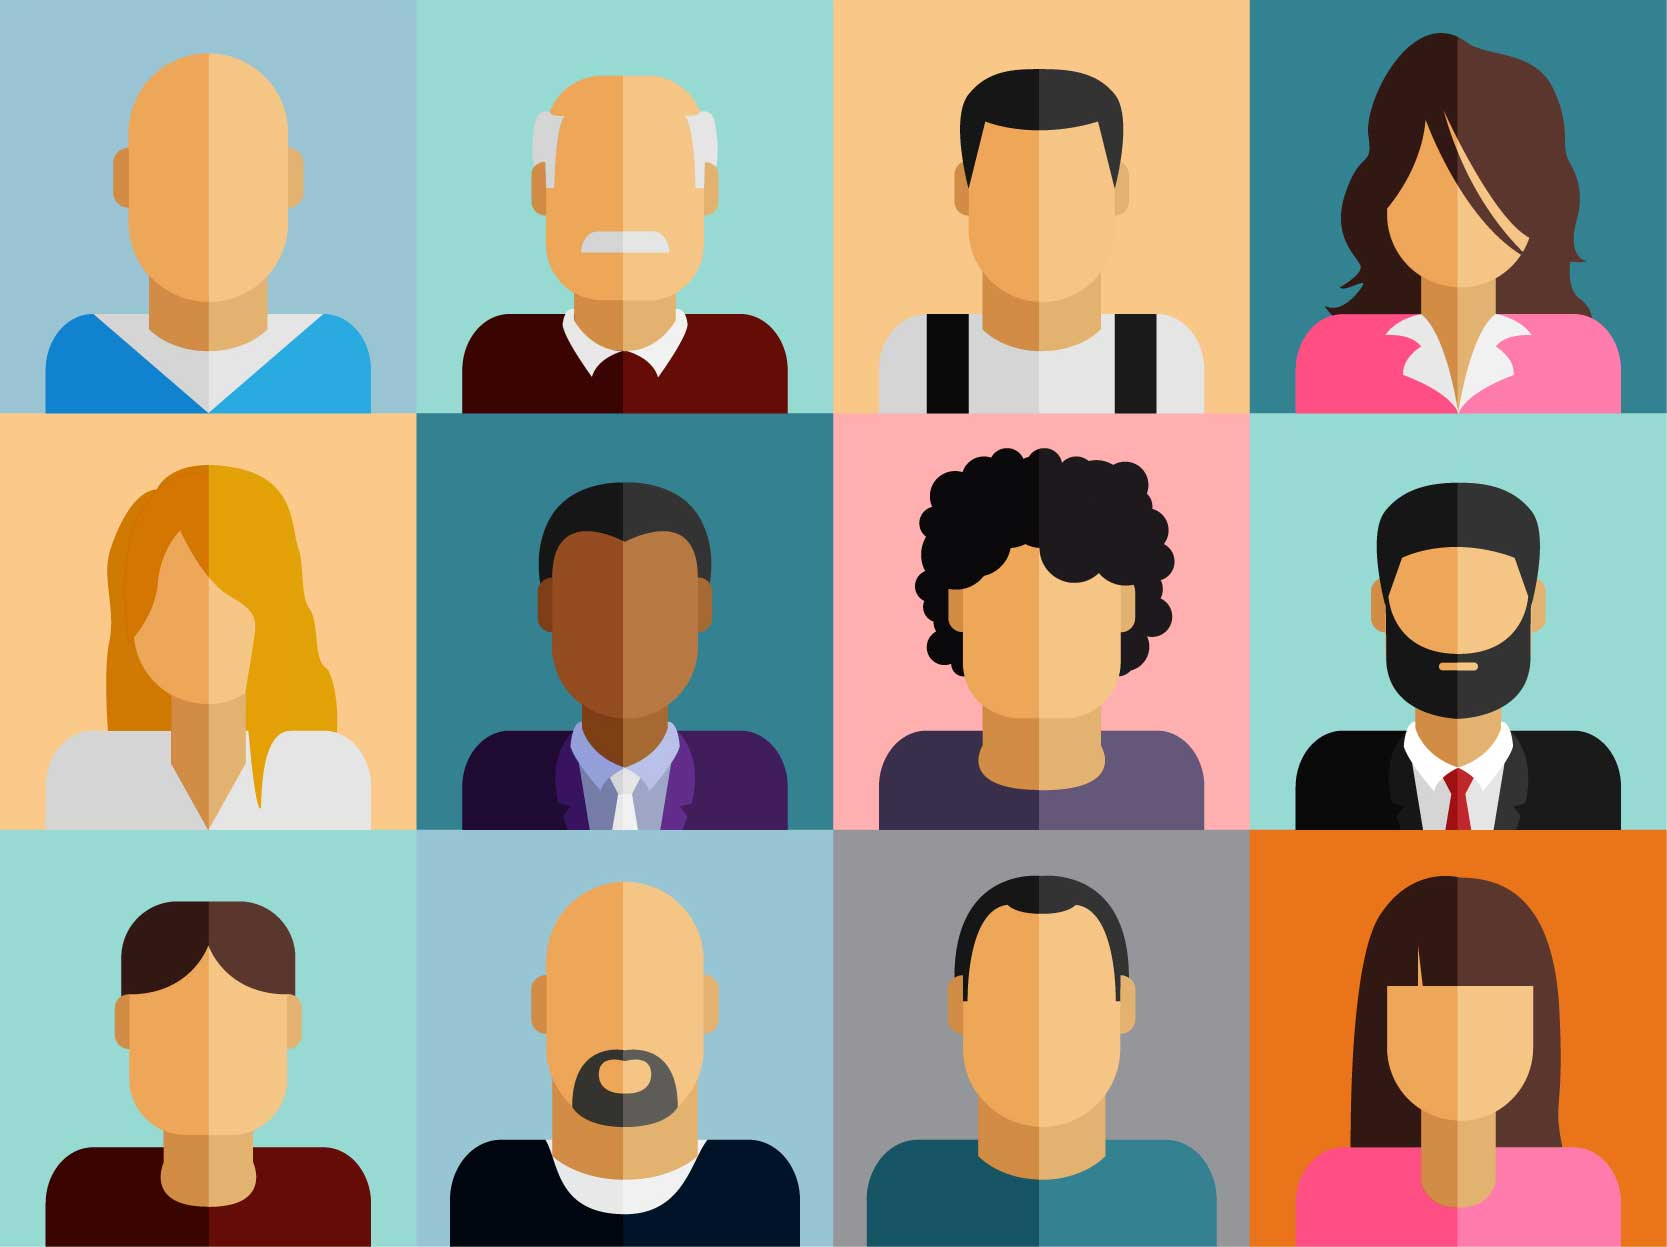 Business people cartoon collage representing different buyer personas